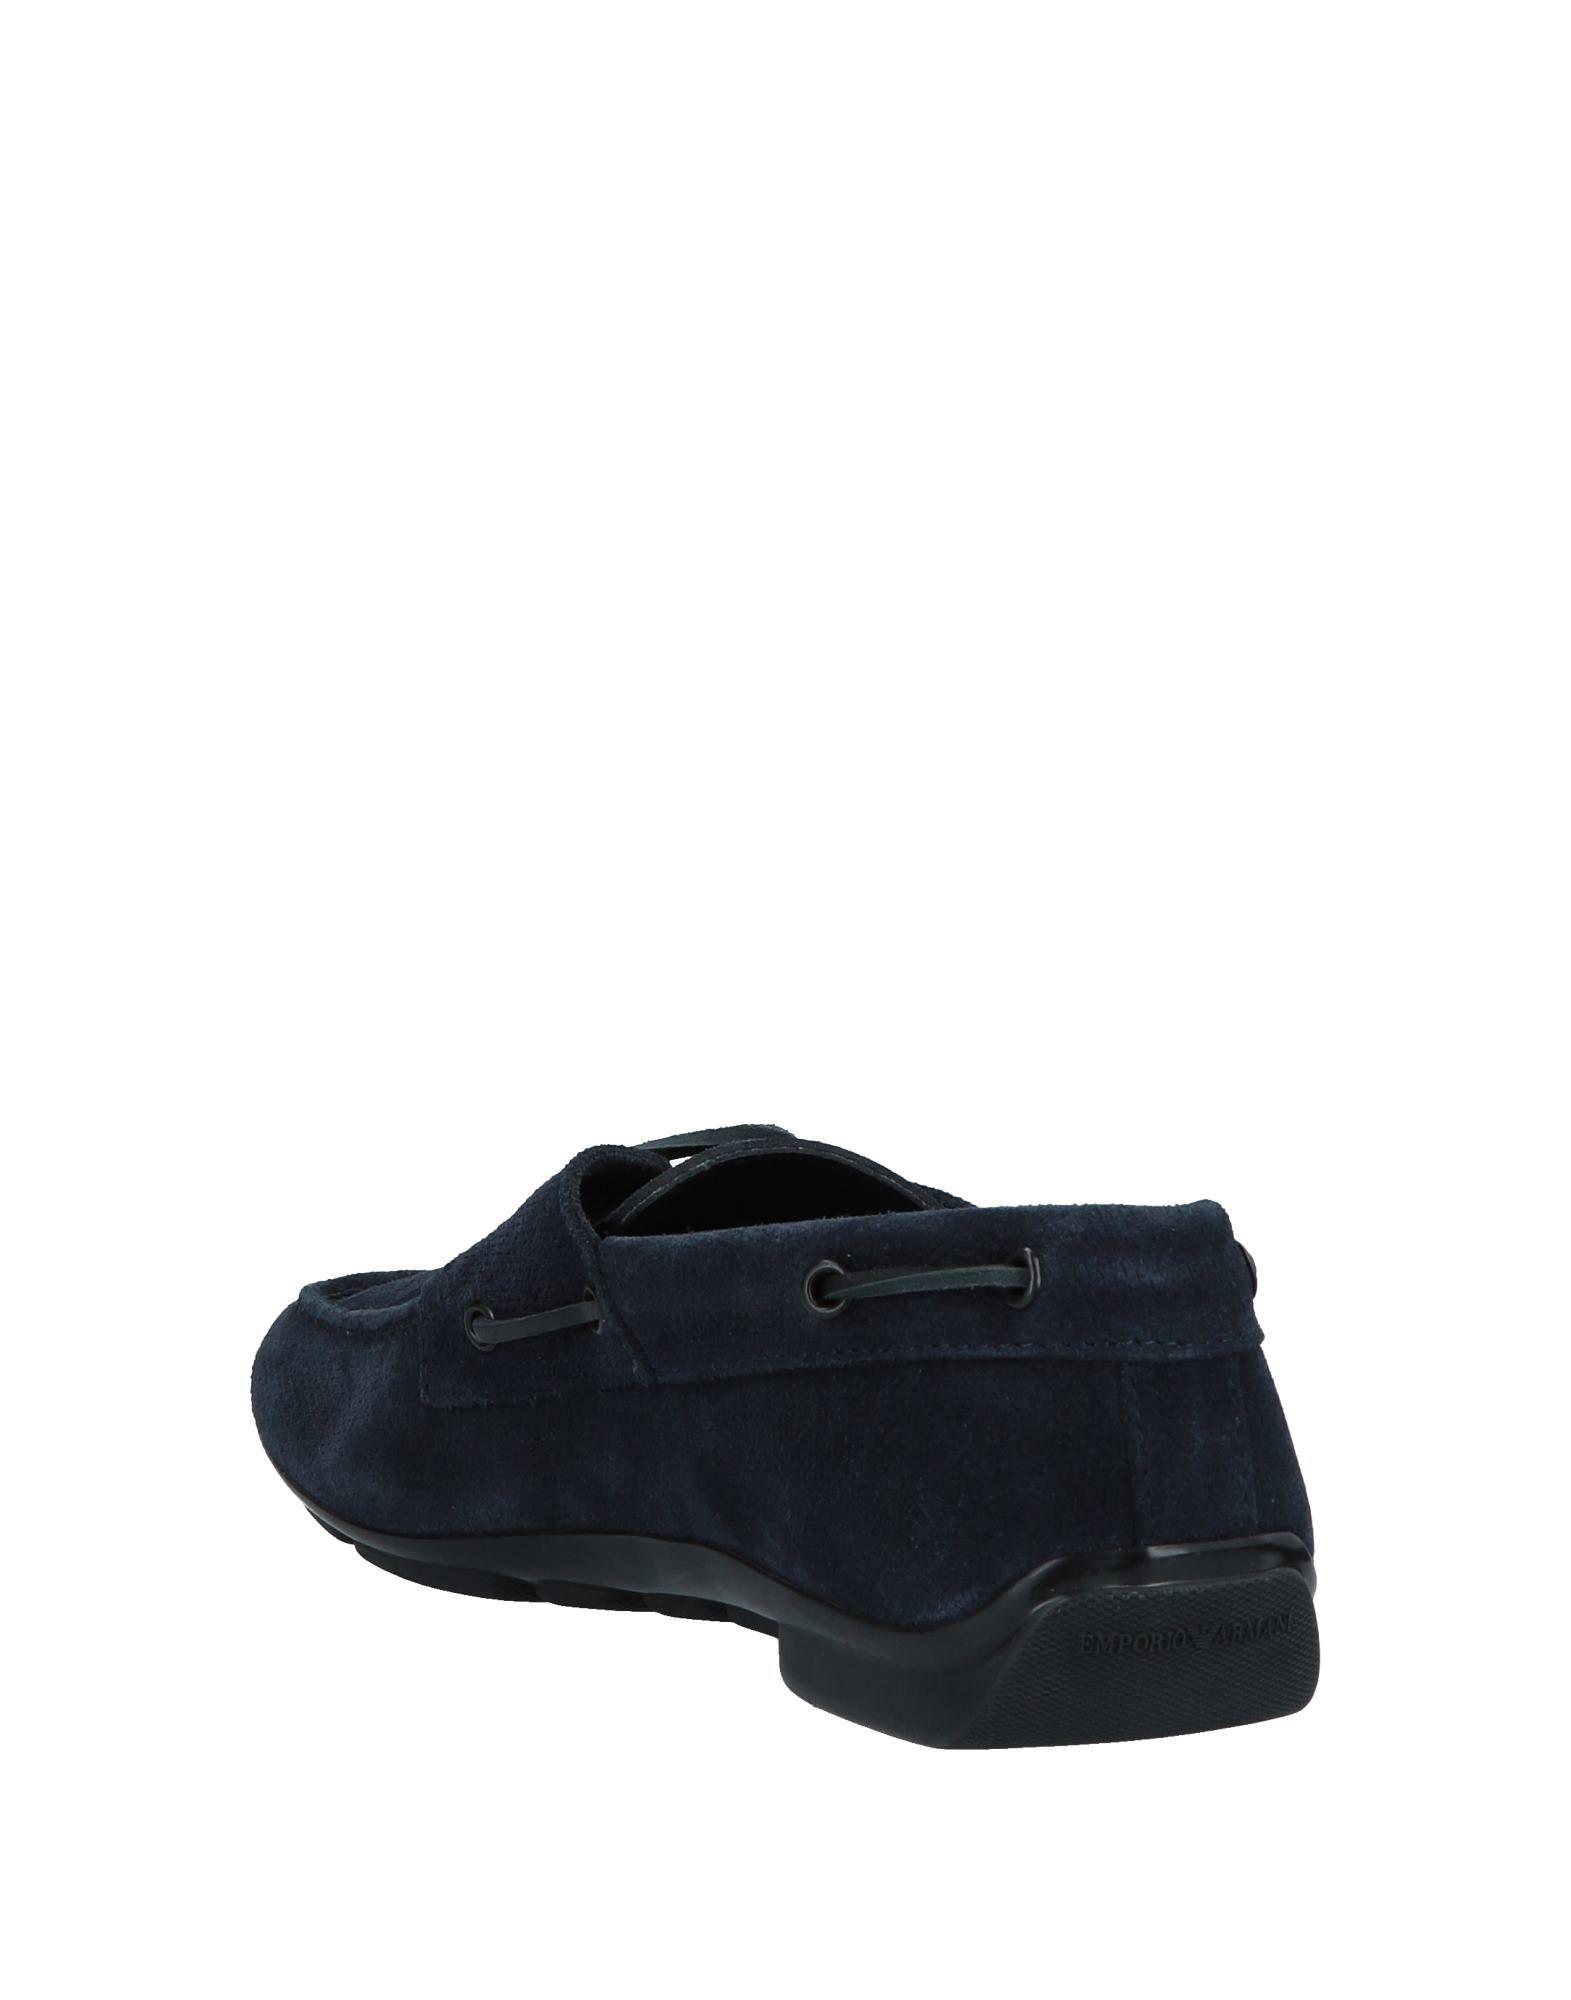 b43116613419 Lyst - Emporio Armani Loafer in Blue for Men